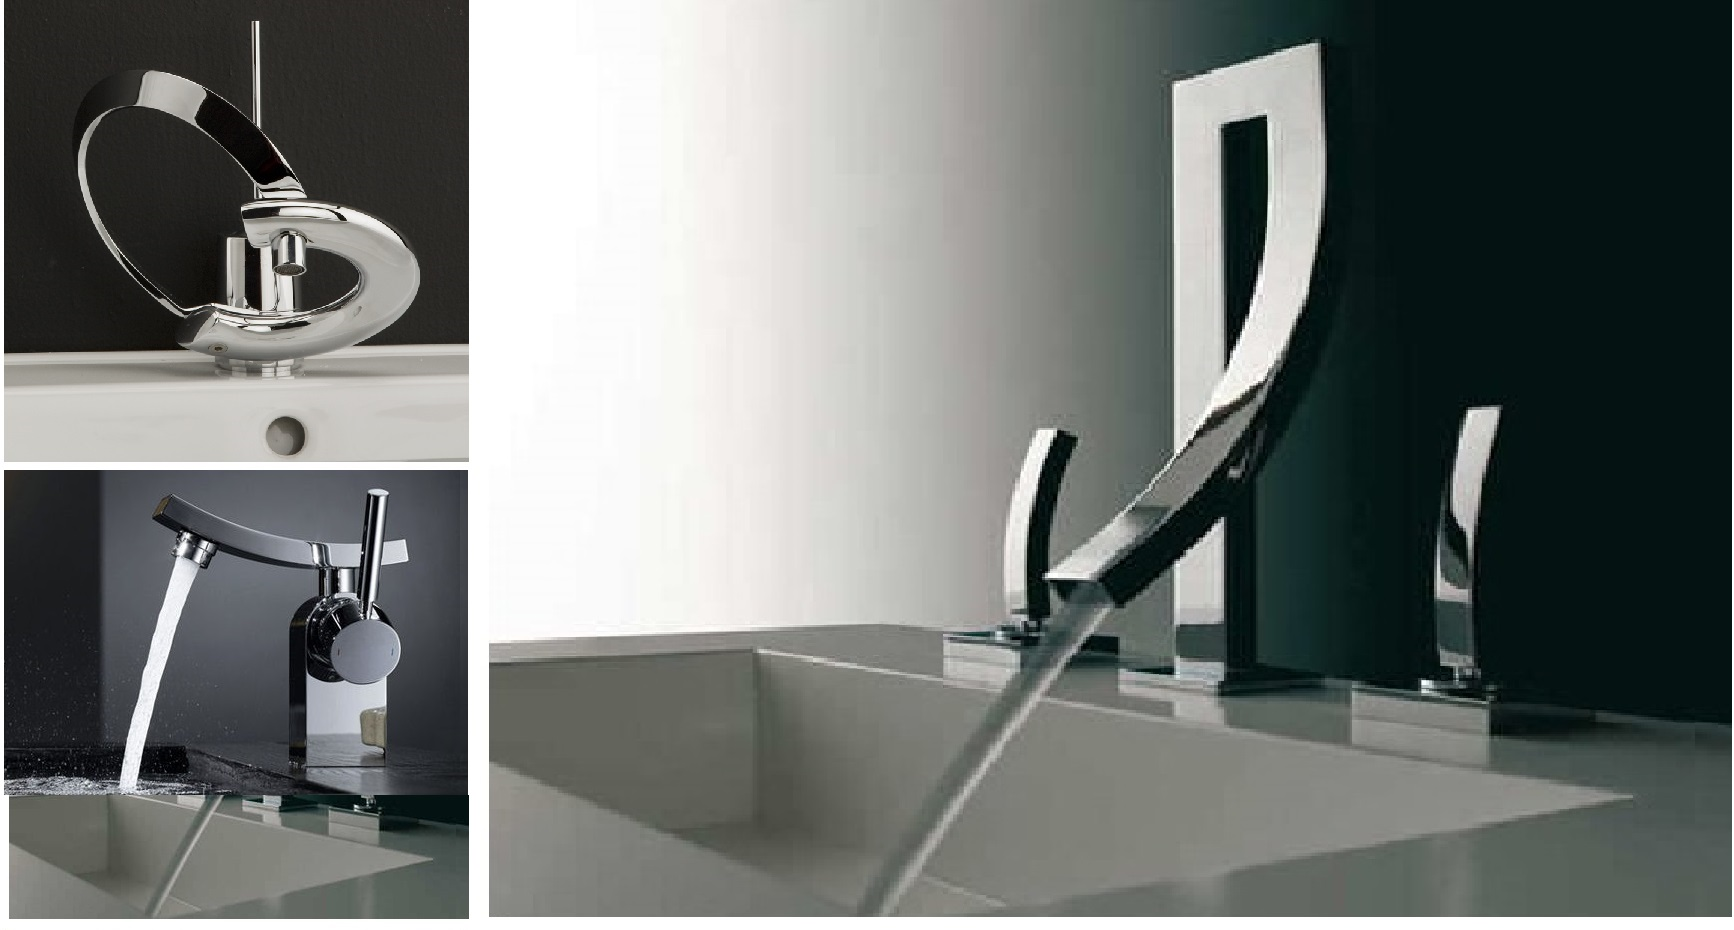 Buy Contemporary Bathroom Faucets | Bathselect.com